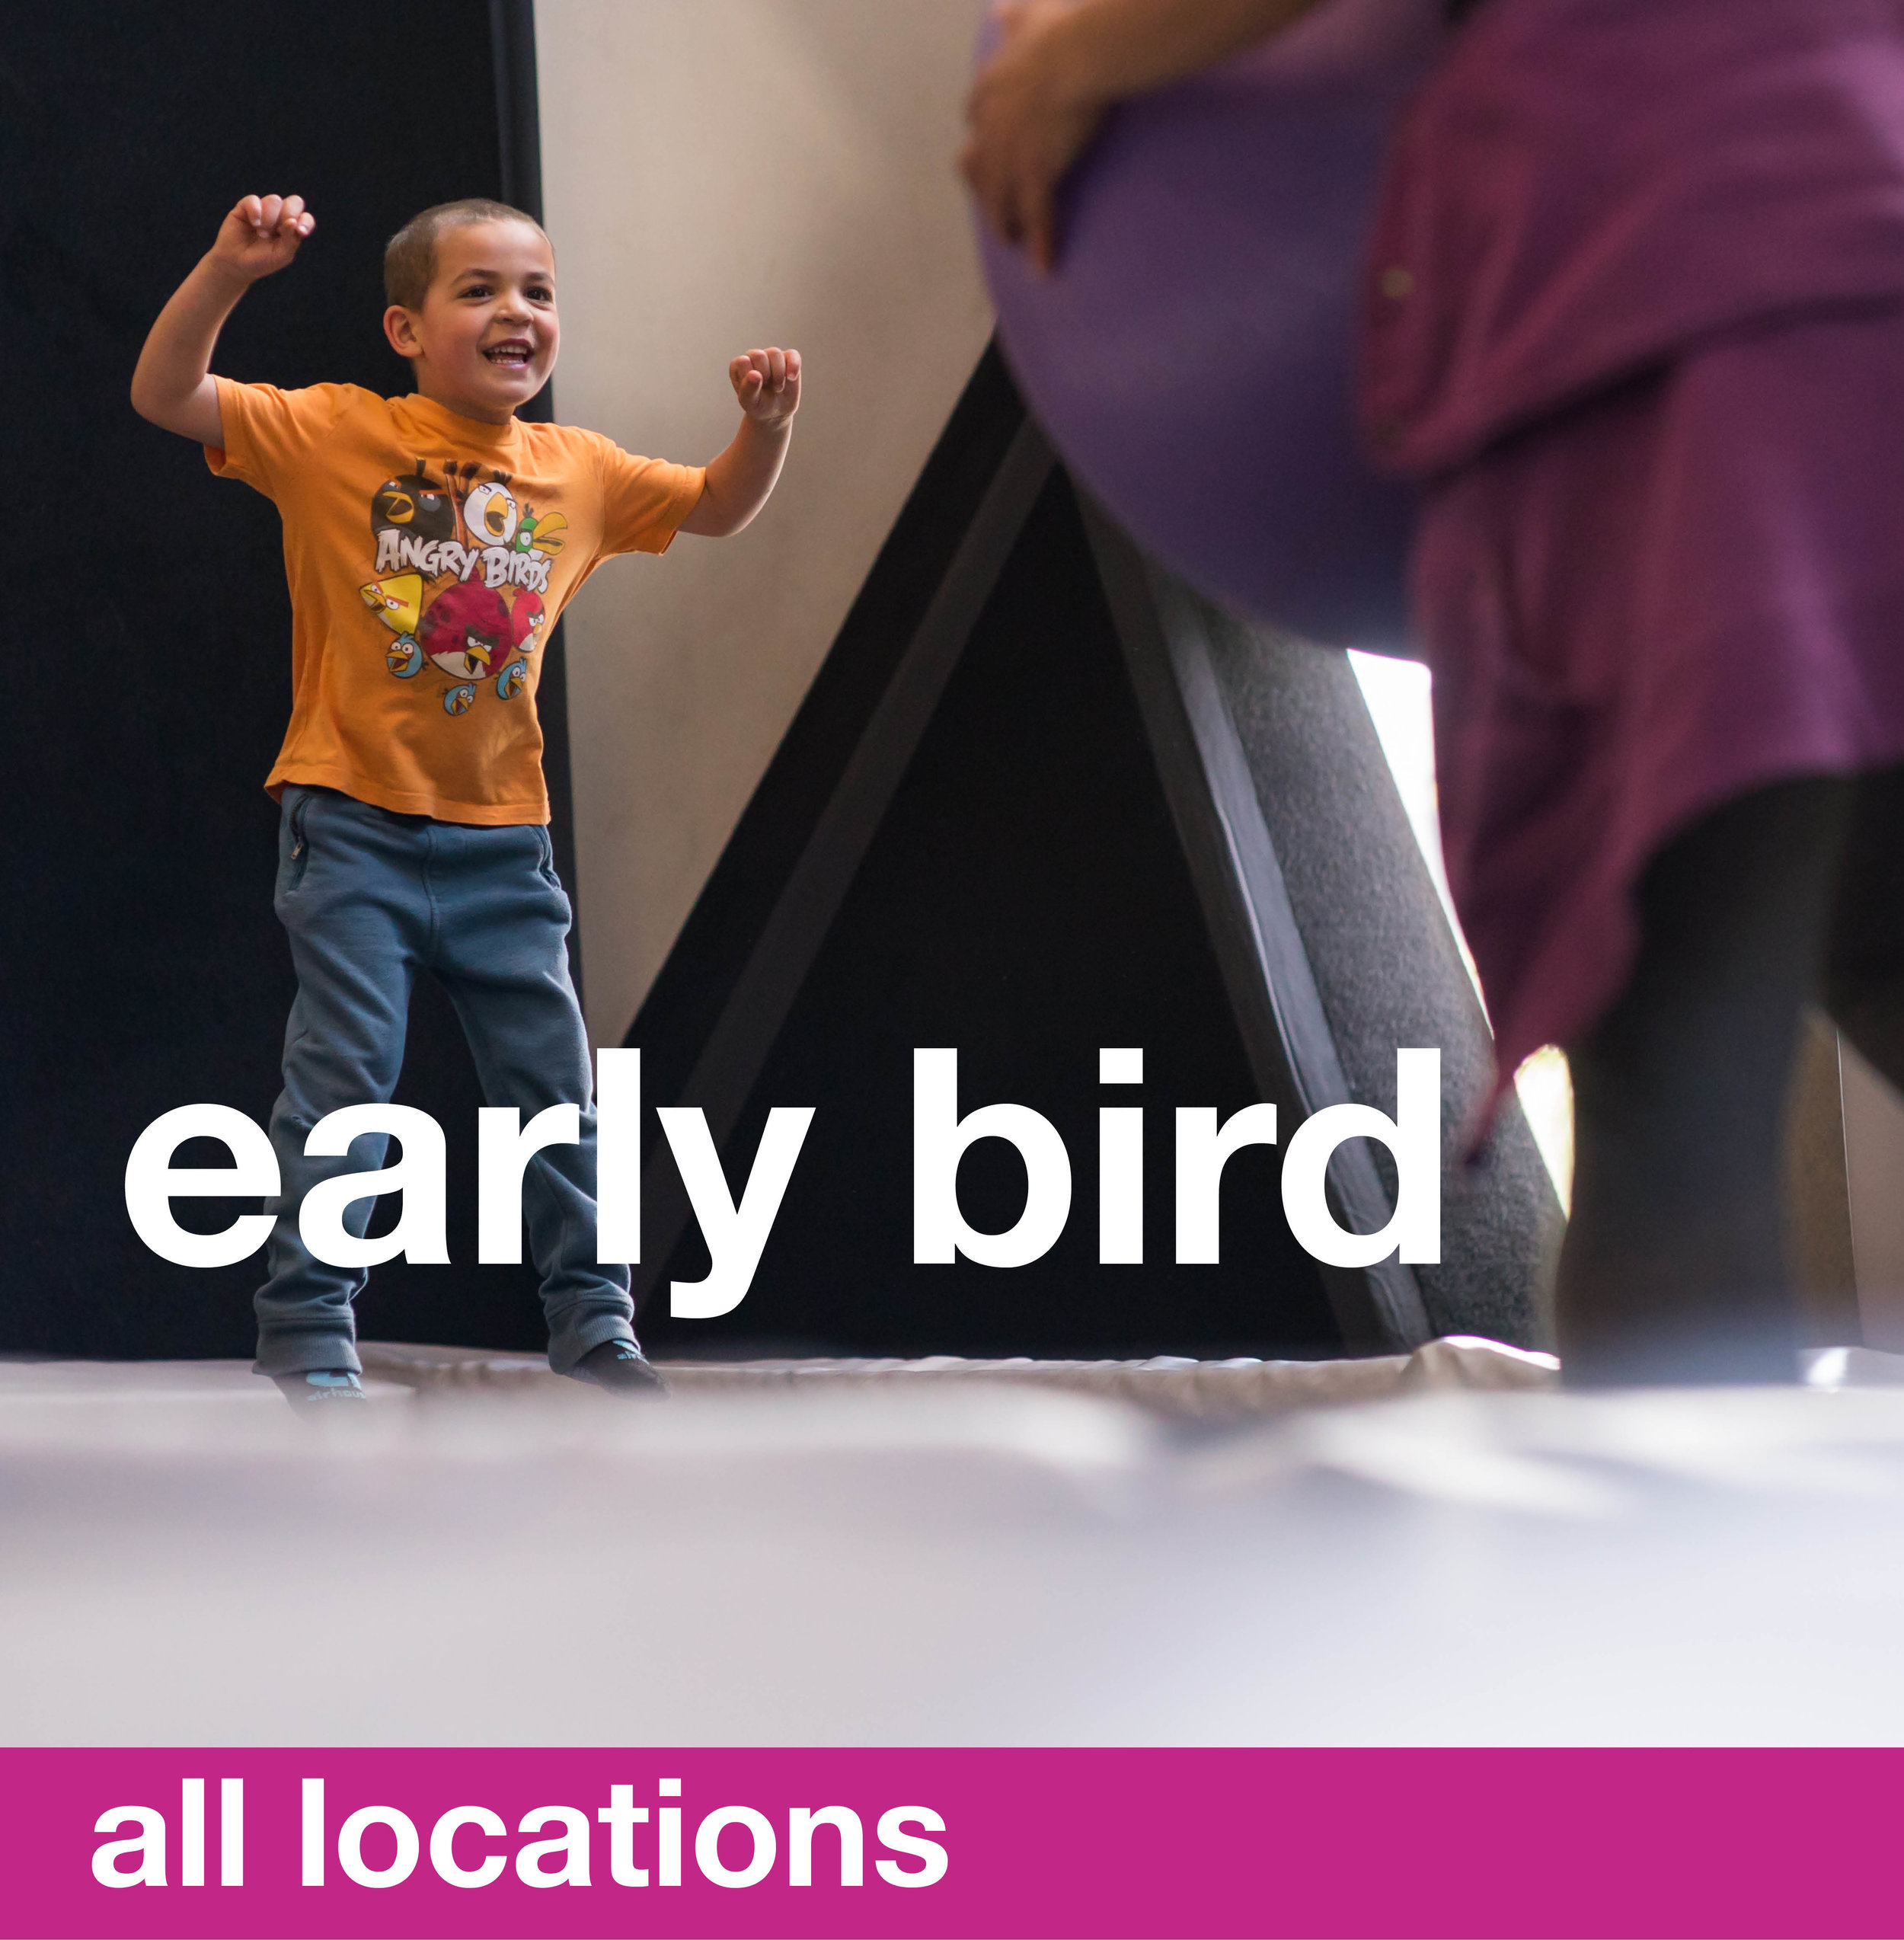 Events Page - Early bird.jpg